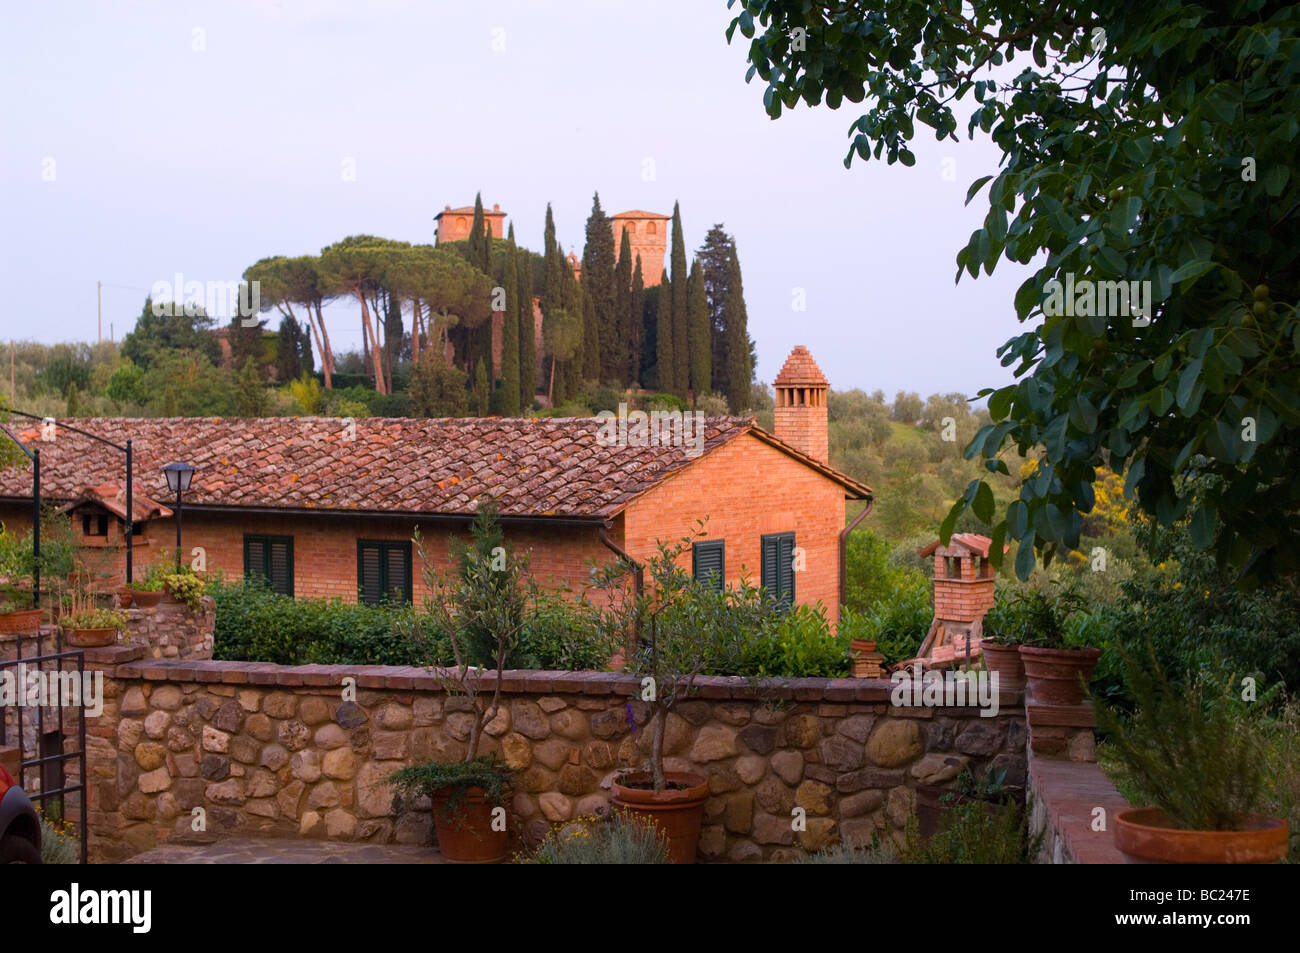 Castle in the Tuscan Hills - Stock Image